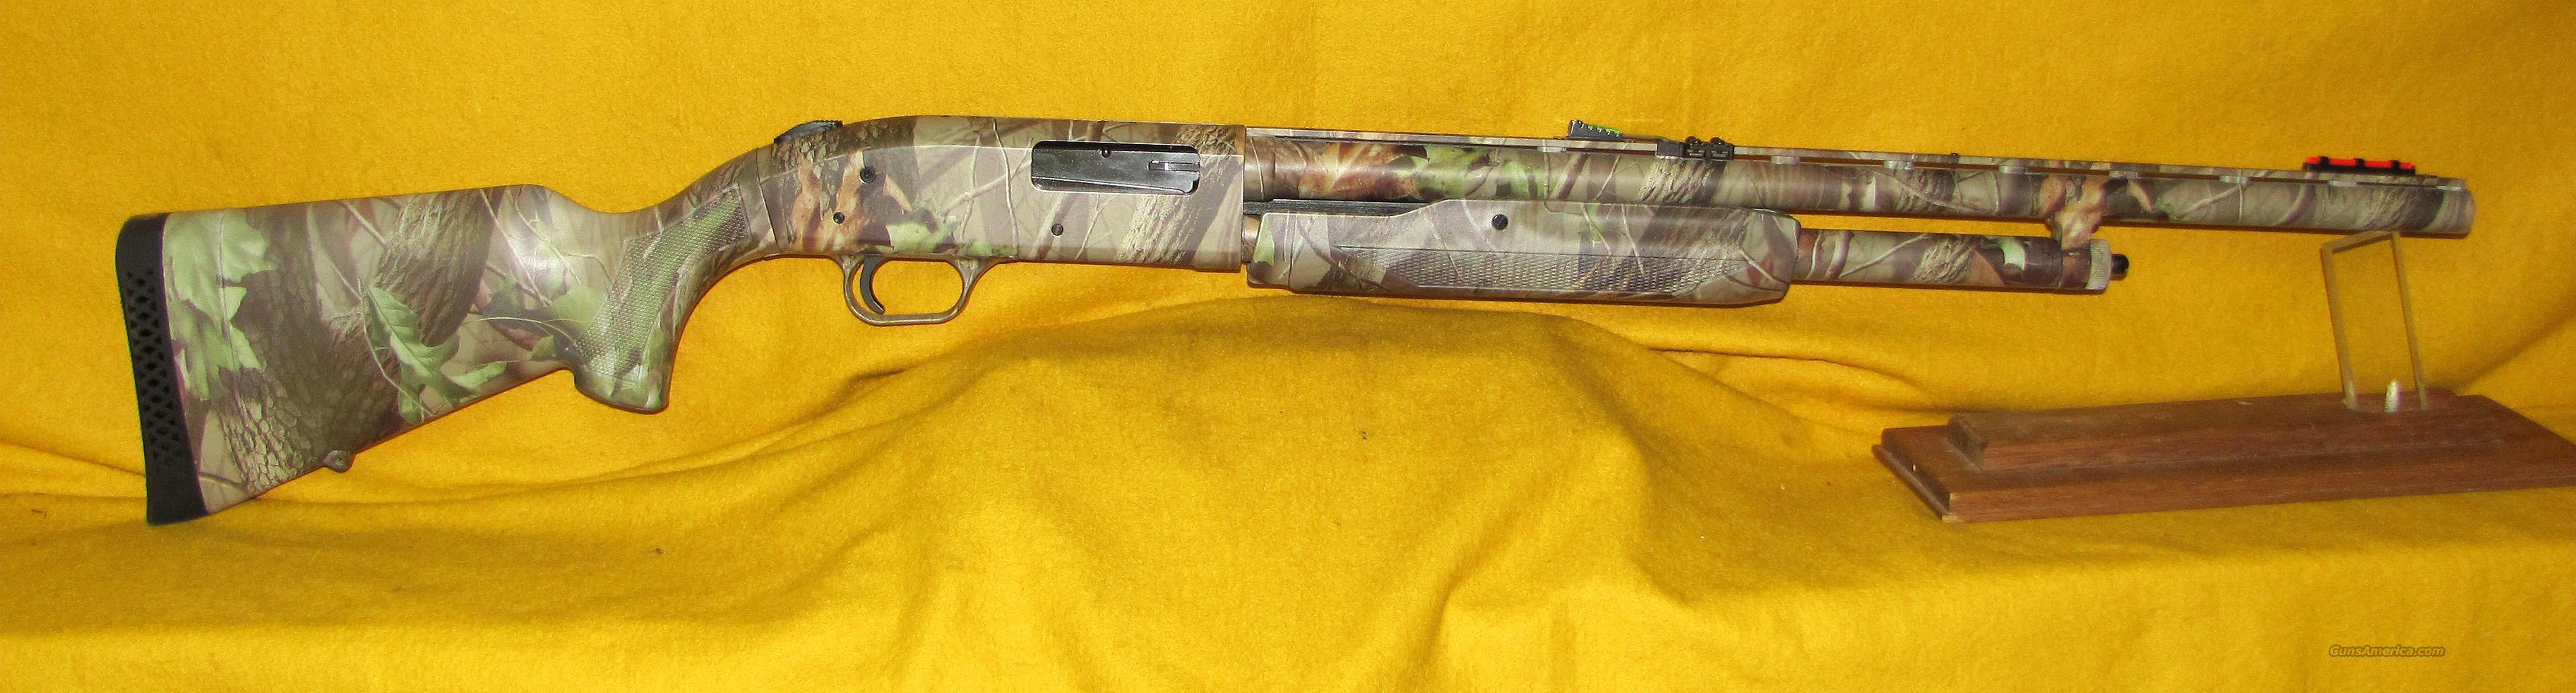 MOSSBERG 500C YOUTH TURKEY  Guns > Shotguns > Mossberg Shotguns > Pump > Sporting